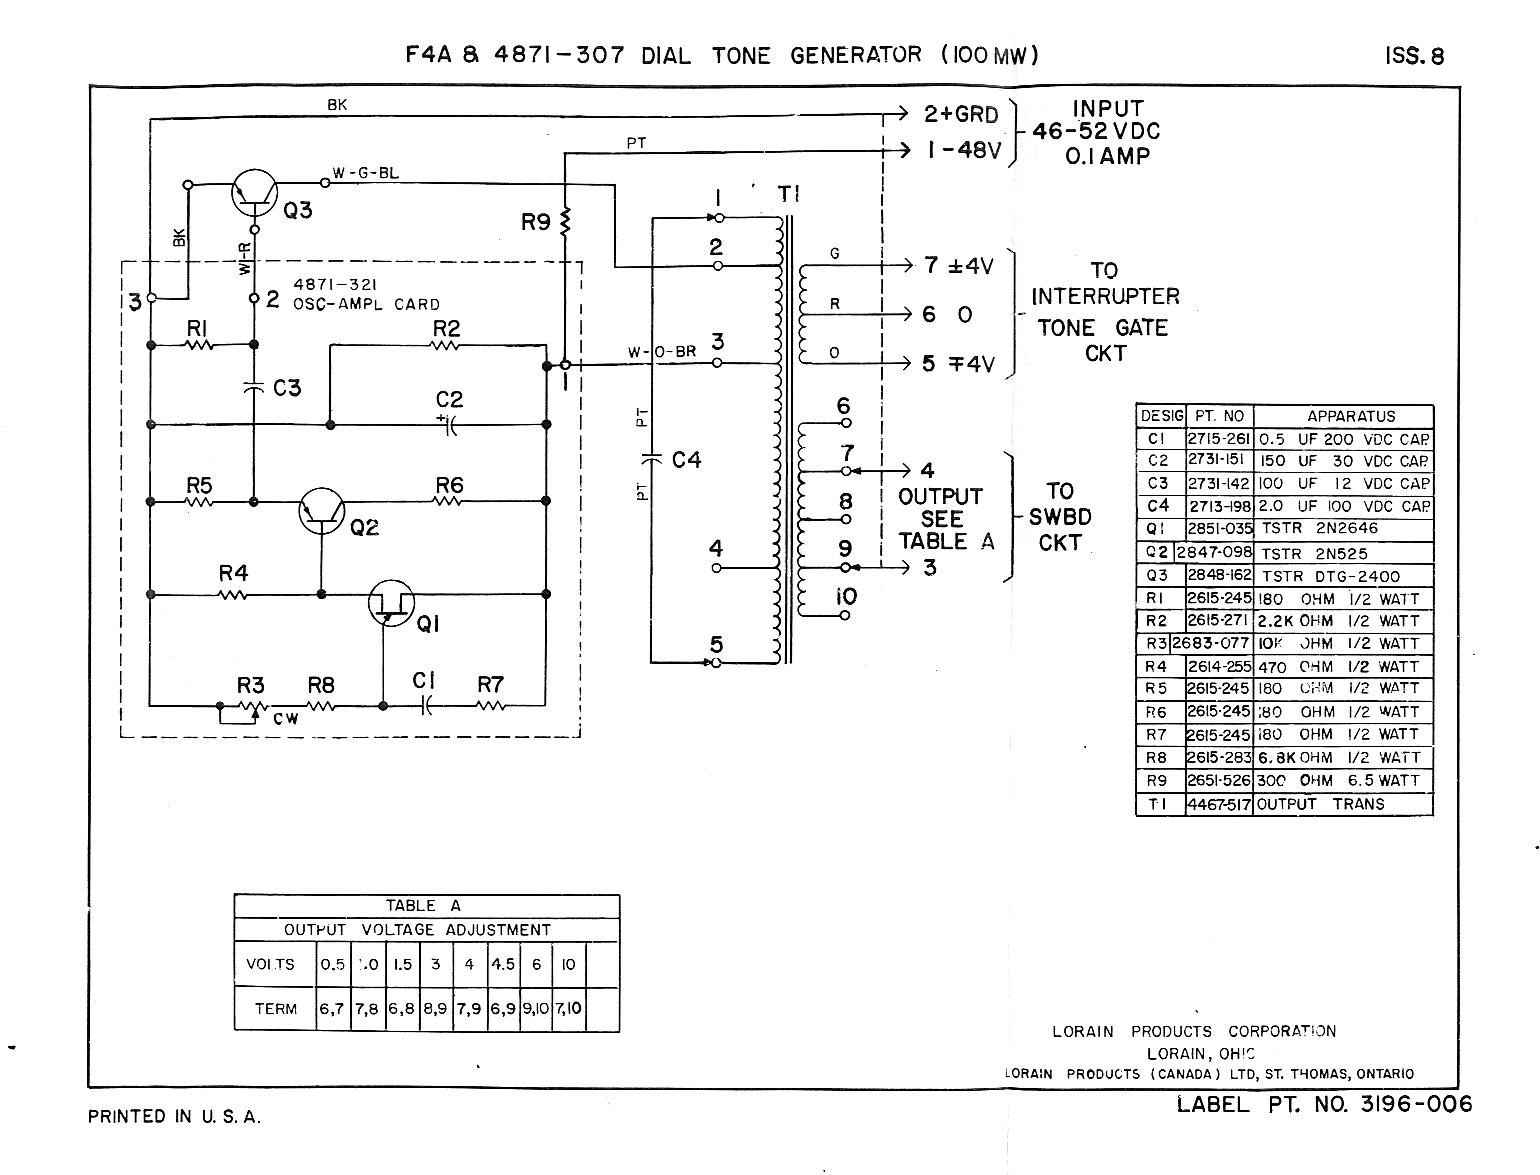 lorain_f4a telephone technical references Residential Telephone Wiring Diagram at bayanpartner.co